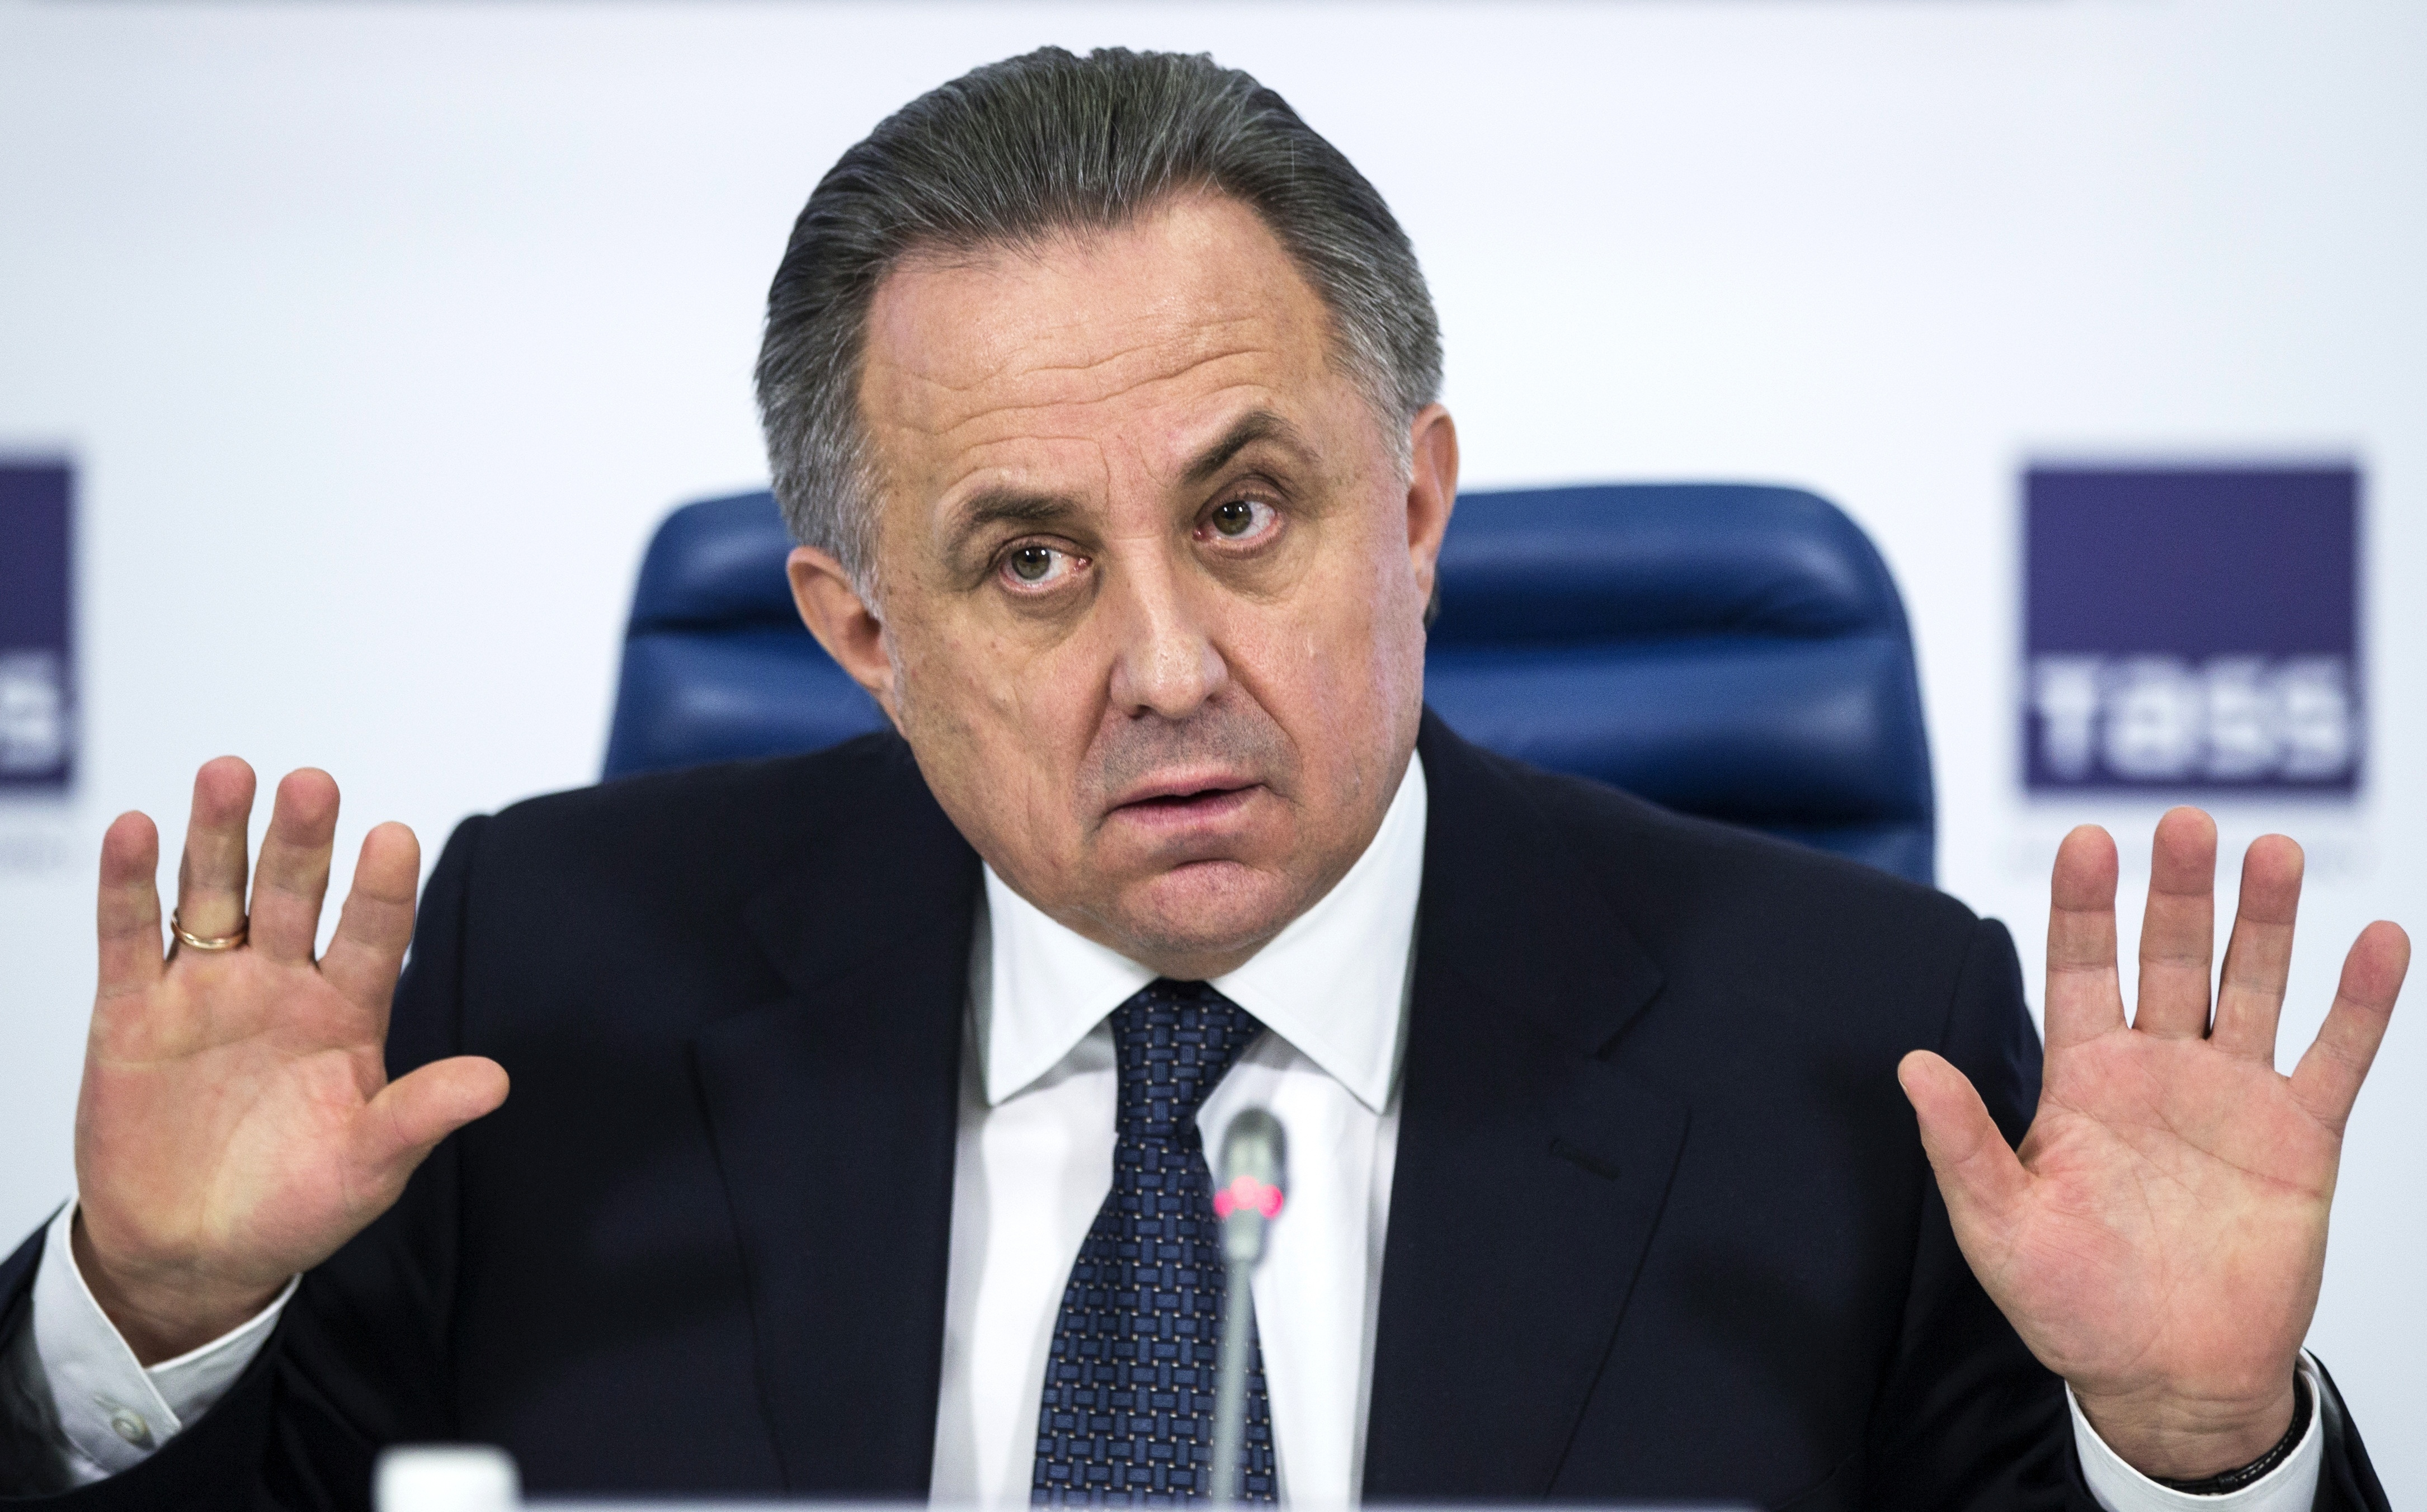 FILE - In this Dec. 25, 2015 file photo Russian Sports Minister Vitaly Mutko gestures during a news conference in Moscow, Russia. Players from Russia's under-21 national soccer team had suspicious drug-test samples covered up, emails released by a World A